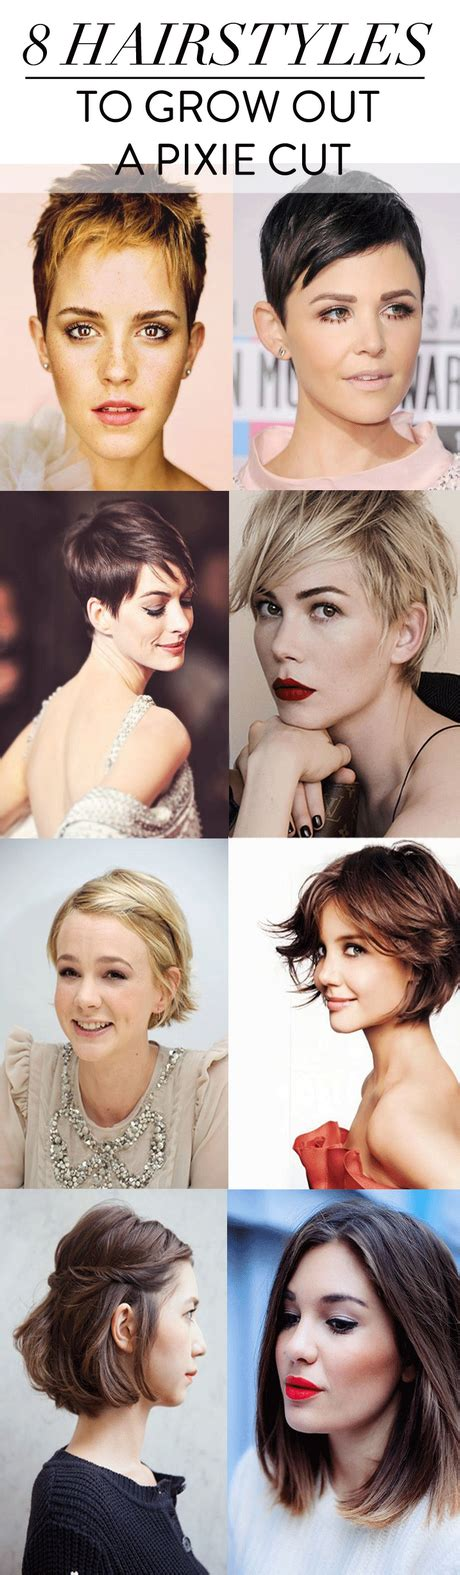 Growing Out A Pixie Cut Hairstyles by Growing Out A Pixie Cut Stages